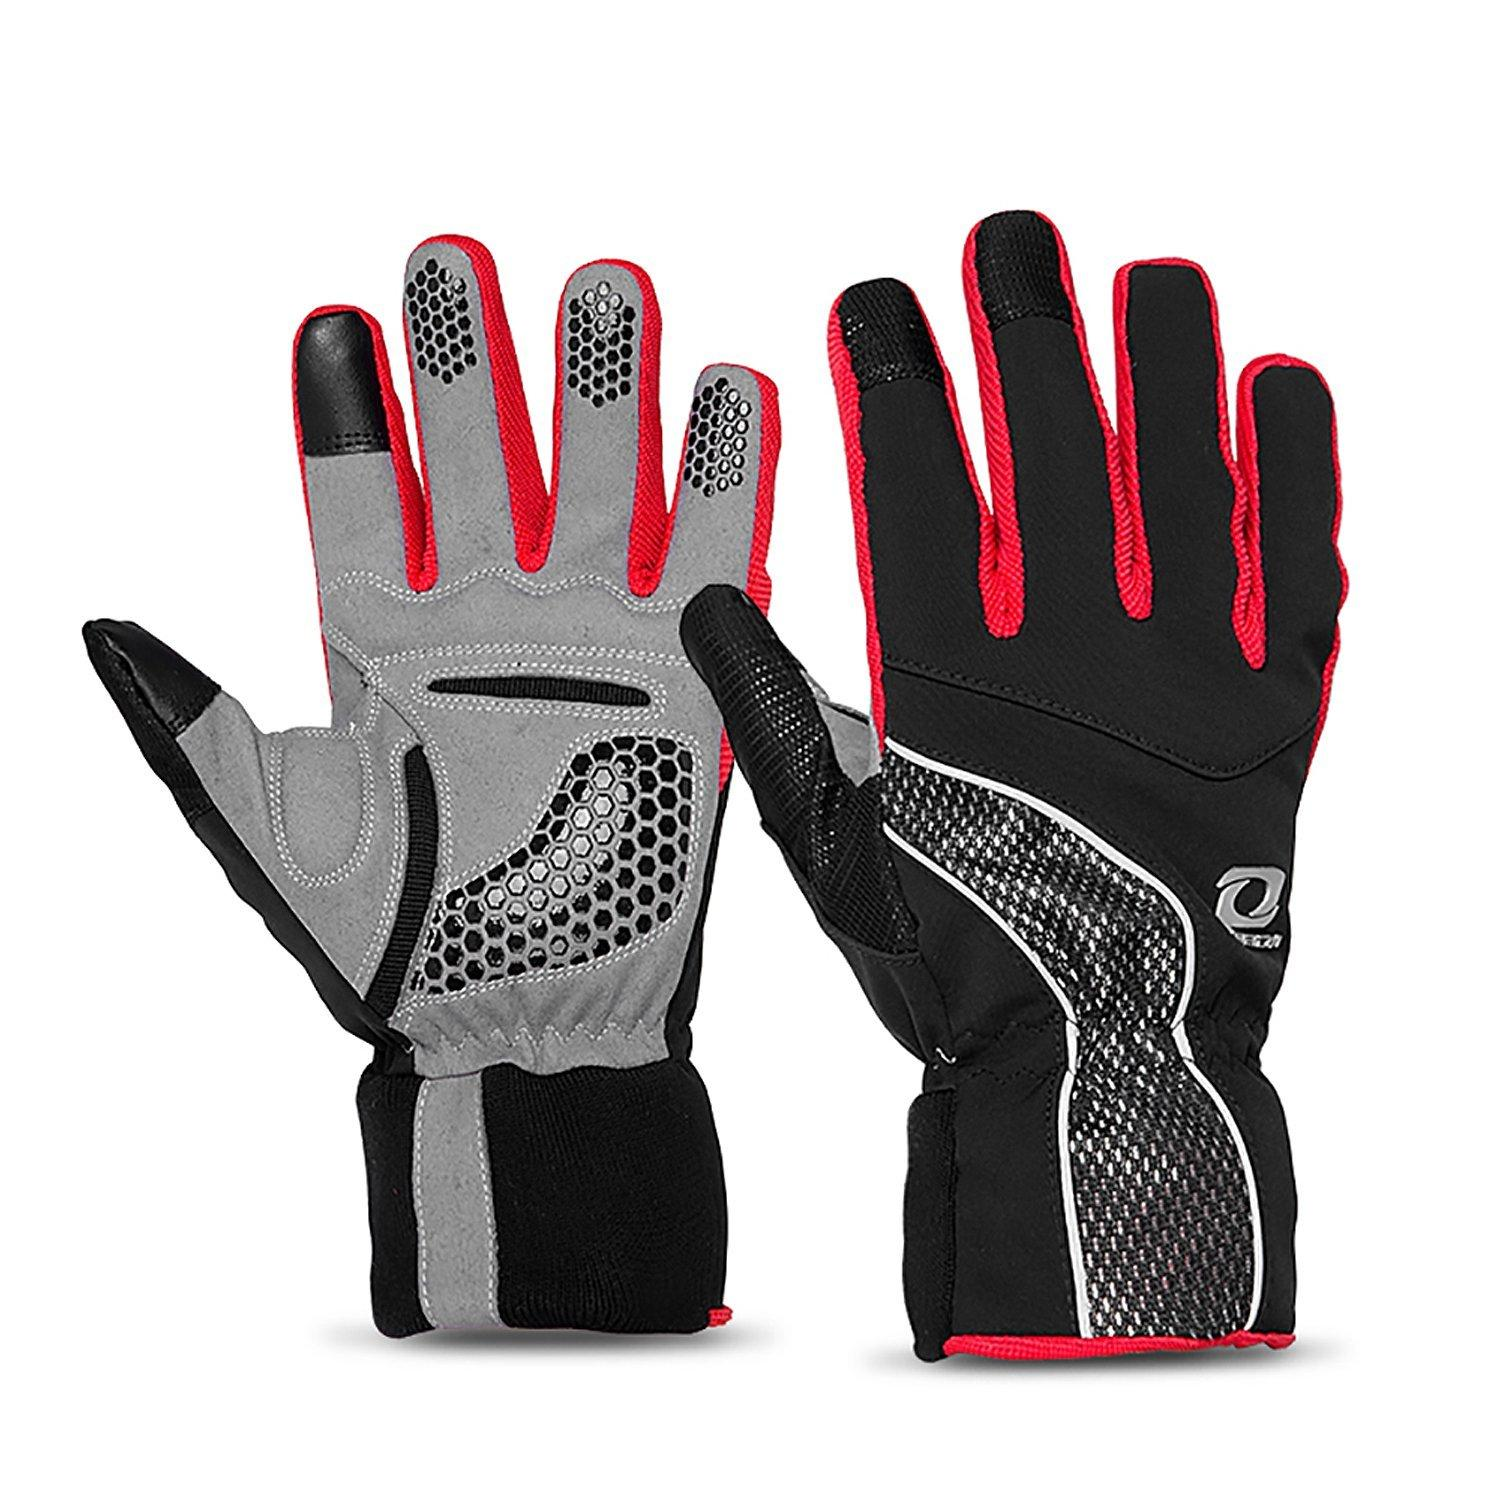 4ucycling Touch-screen Windproof Thermal Multifunction Warm Gloves